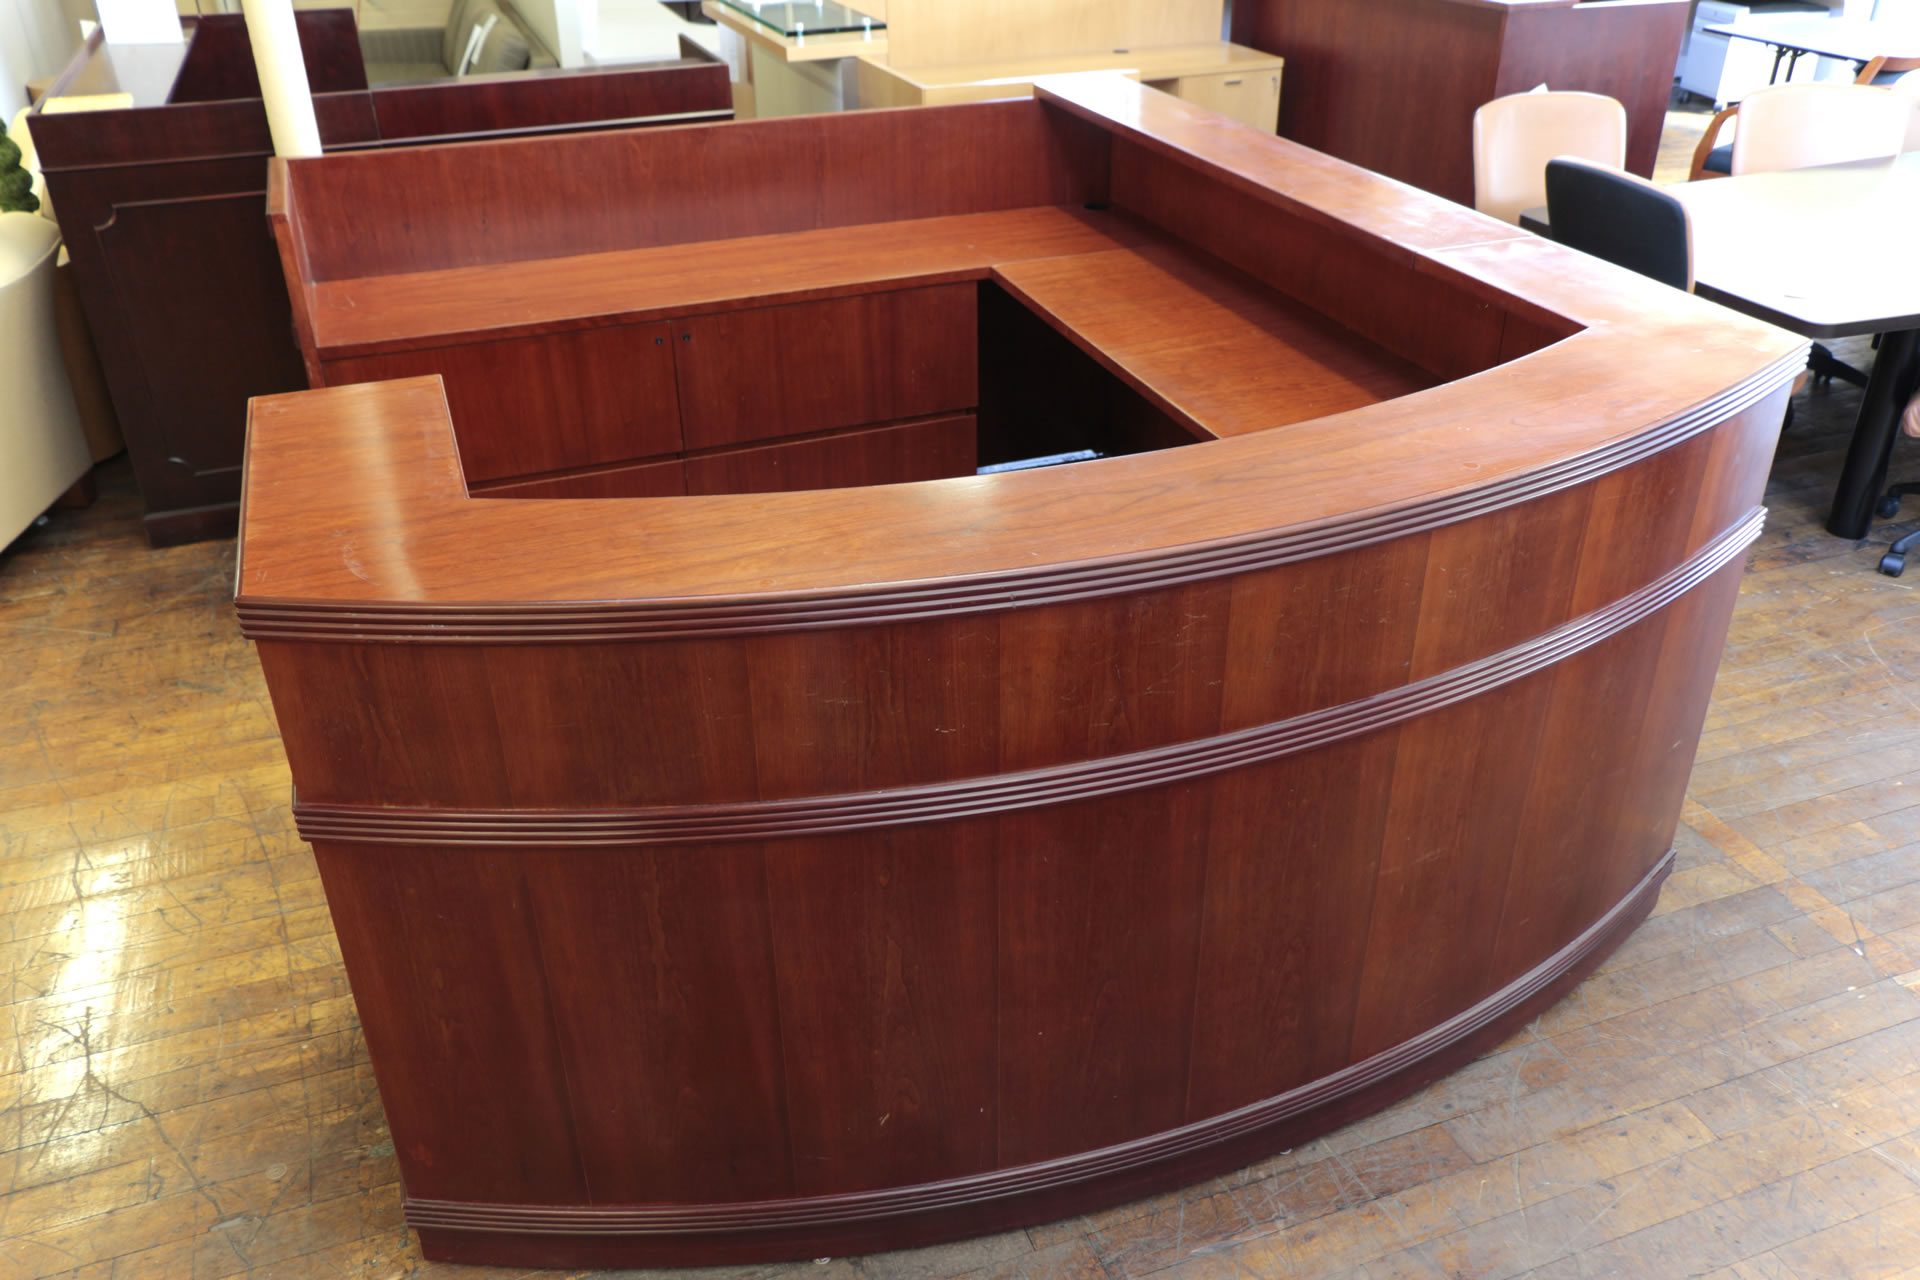 peartreeofficefurniture_peartreeofficefurniture_mg_4872.jpg